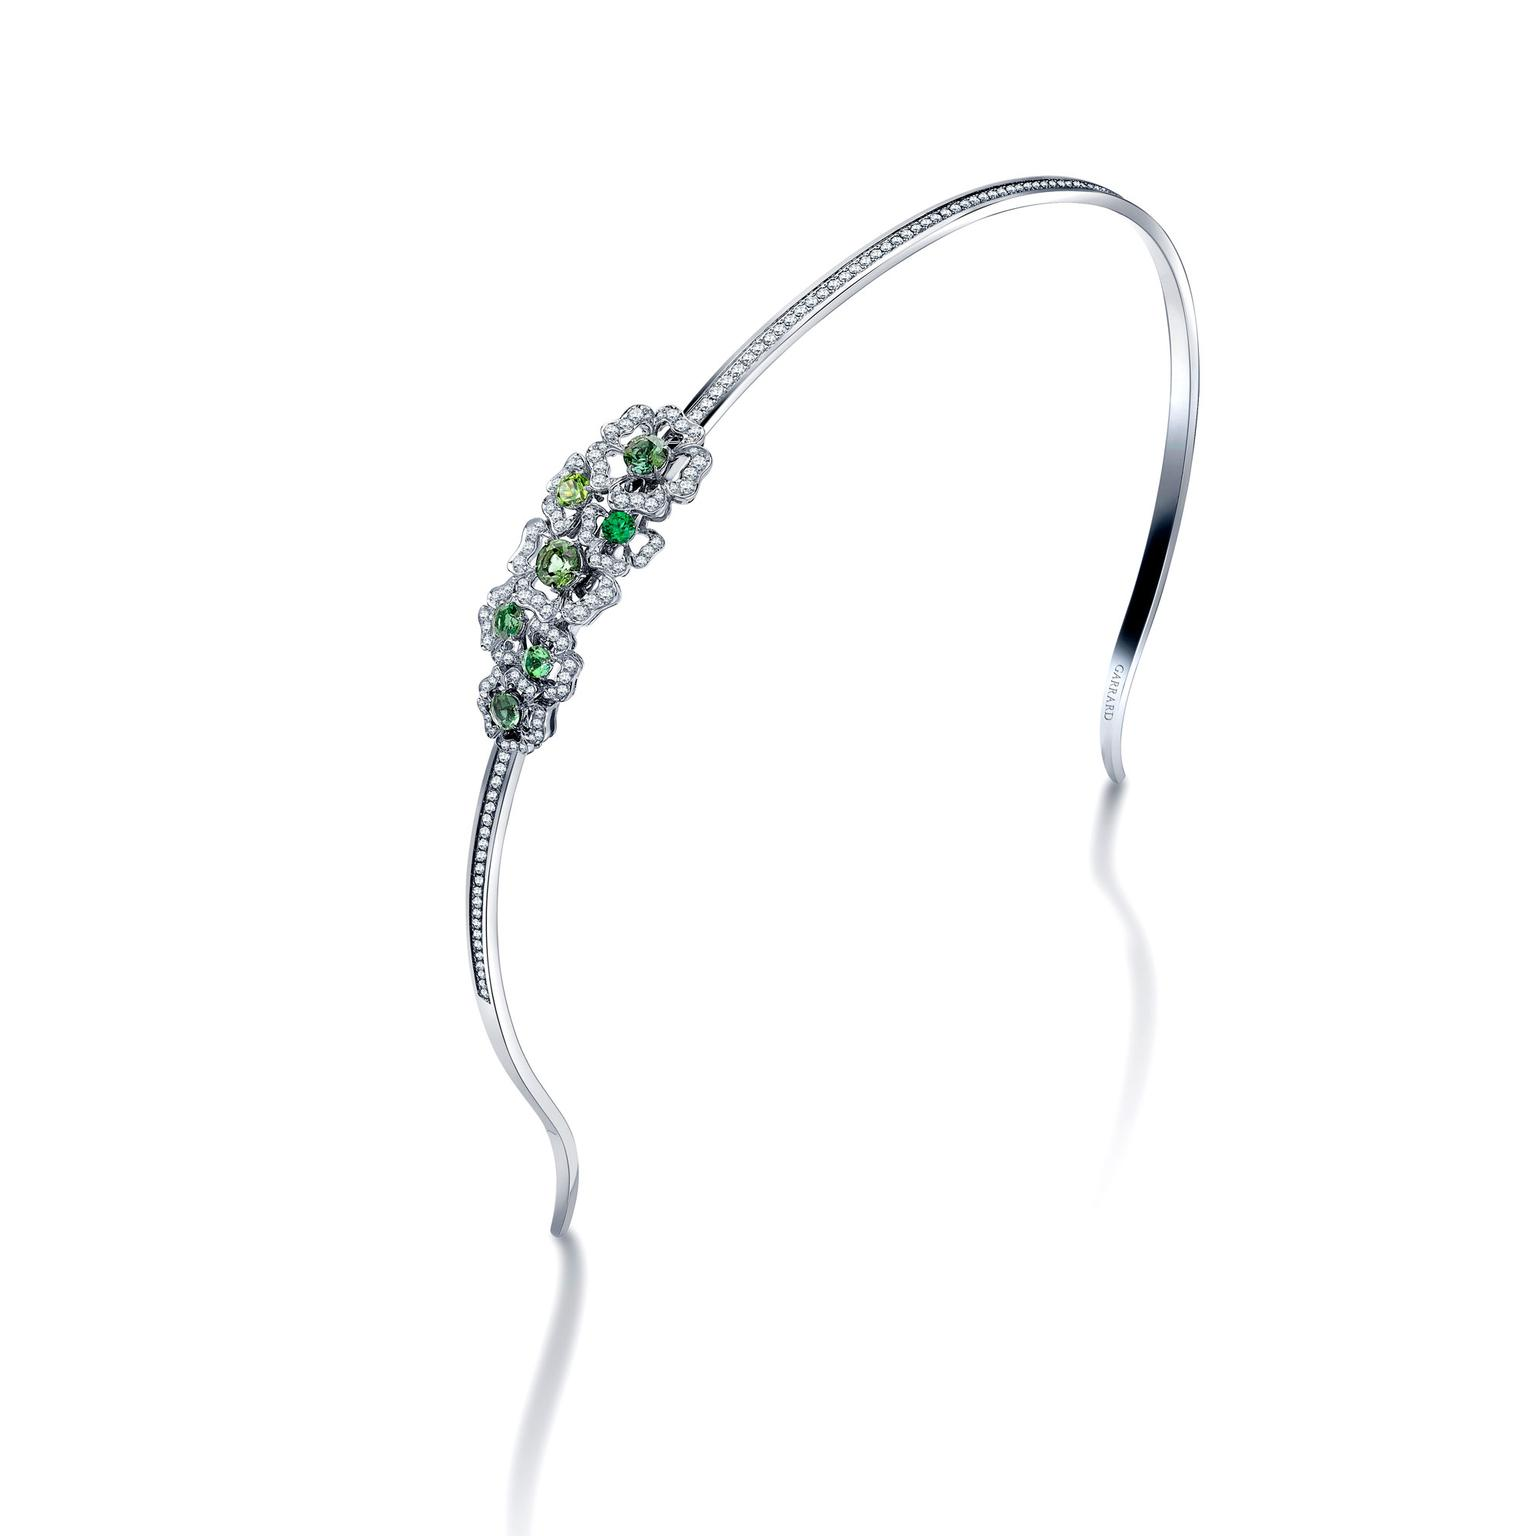 Garrard Tudor Rose headband